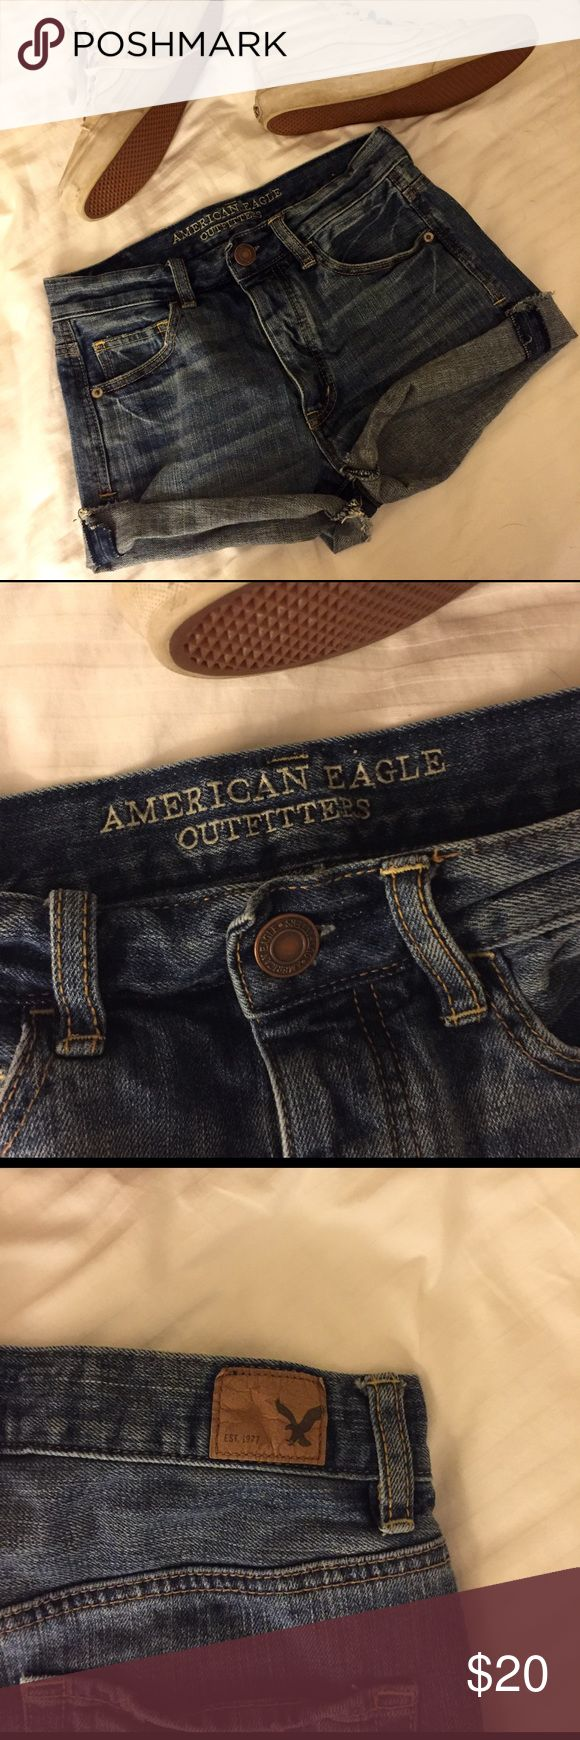 American Eagle shorts! The American Eagle shorts are like new. They are used but have no stains! They are a great pair of shorts! American Eagle Outfitters Shorts Jean Shorts